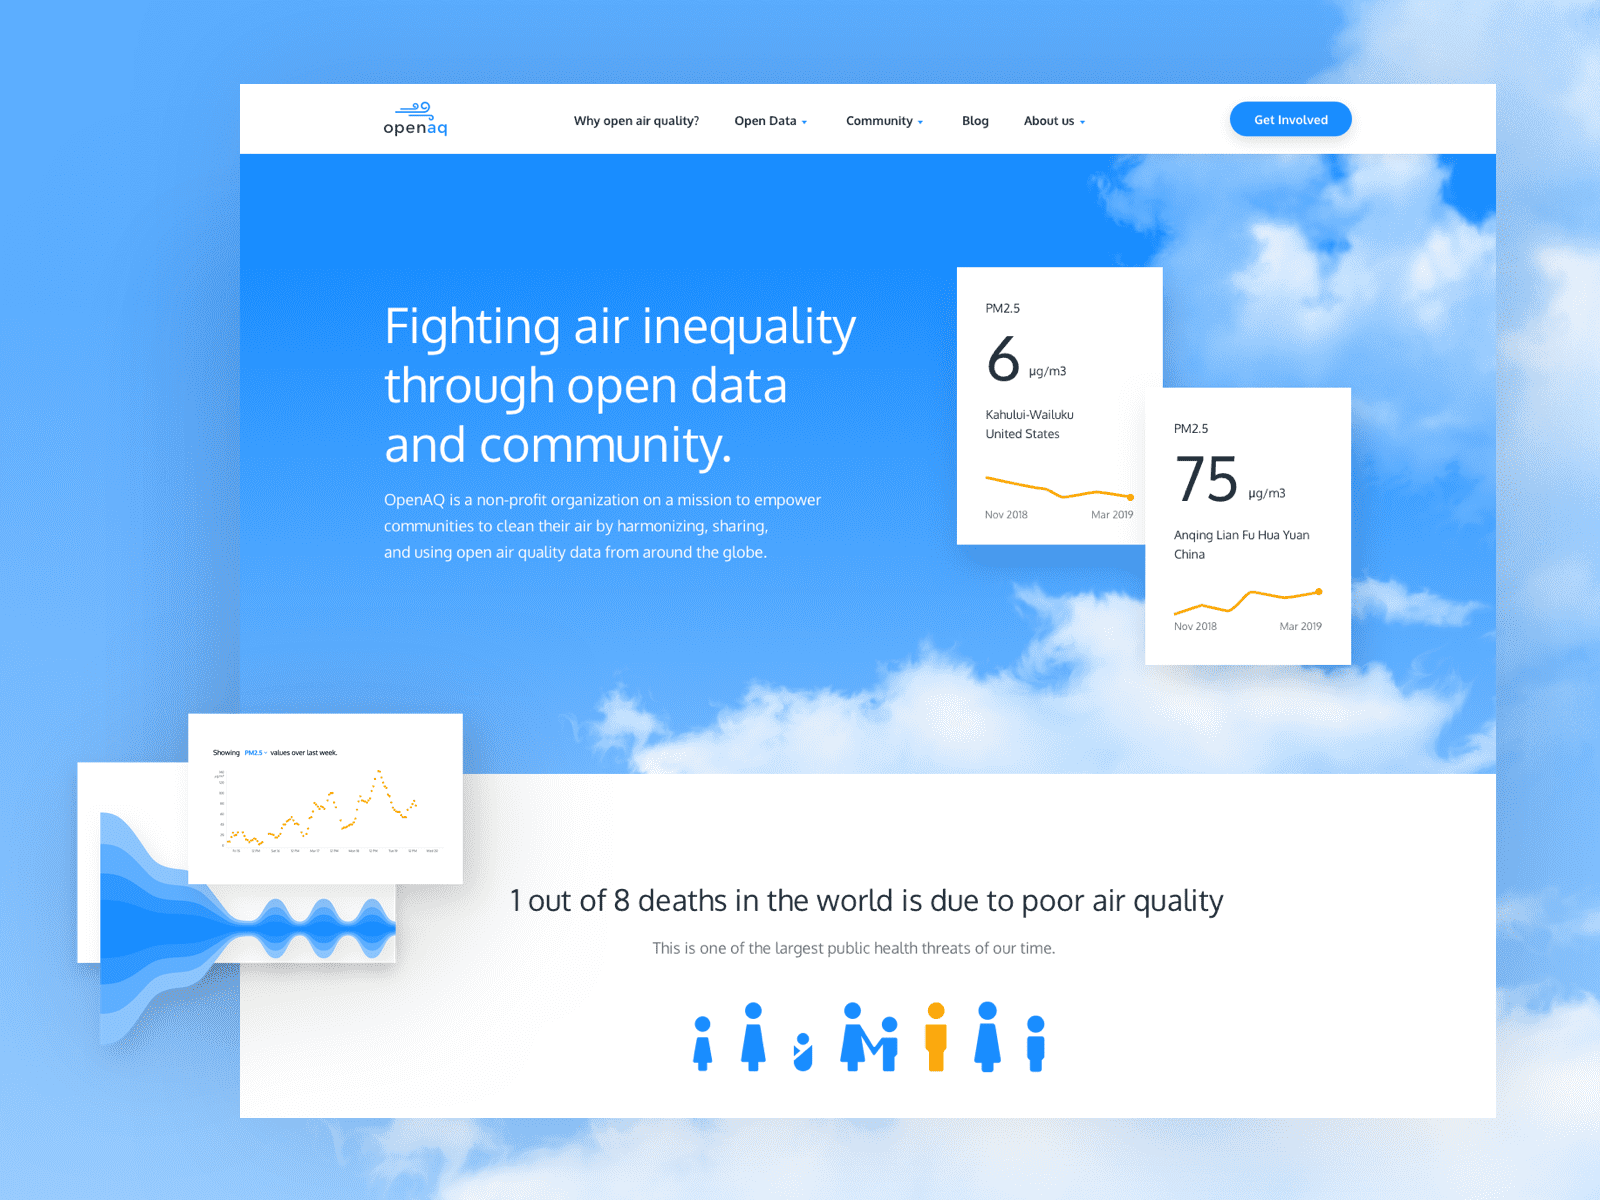 Fighting air inequality through open data.